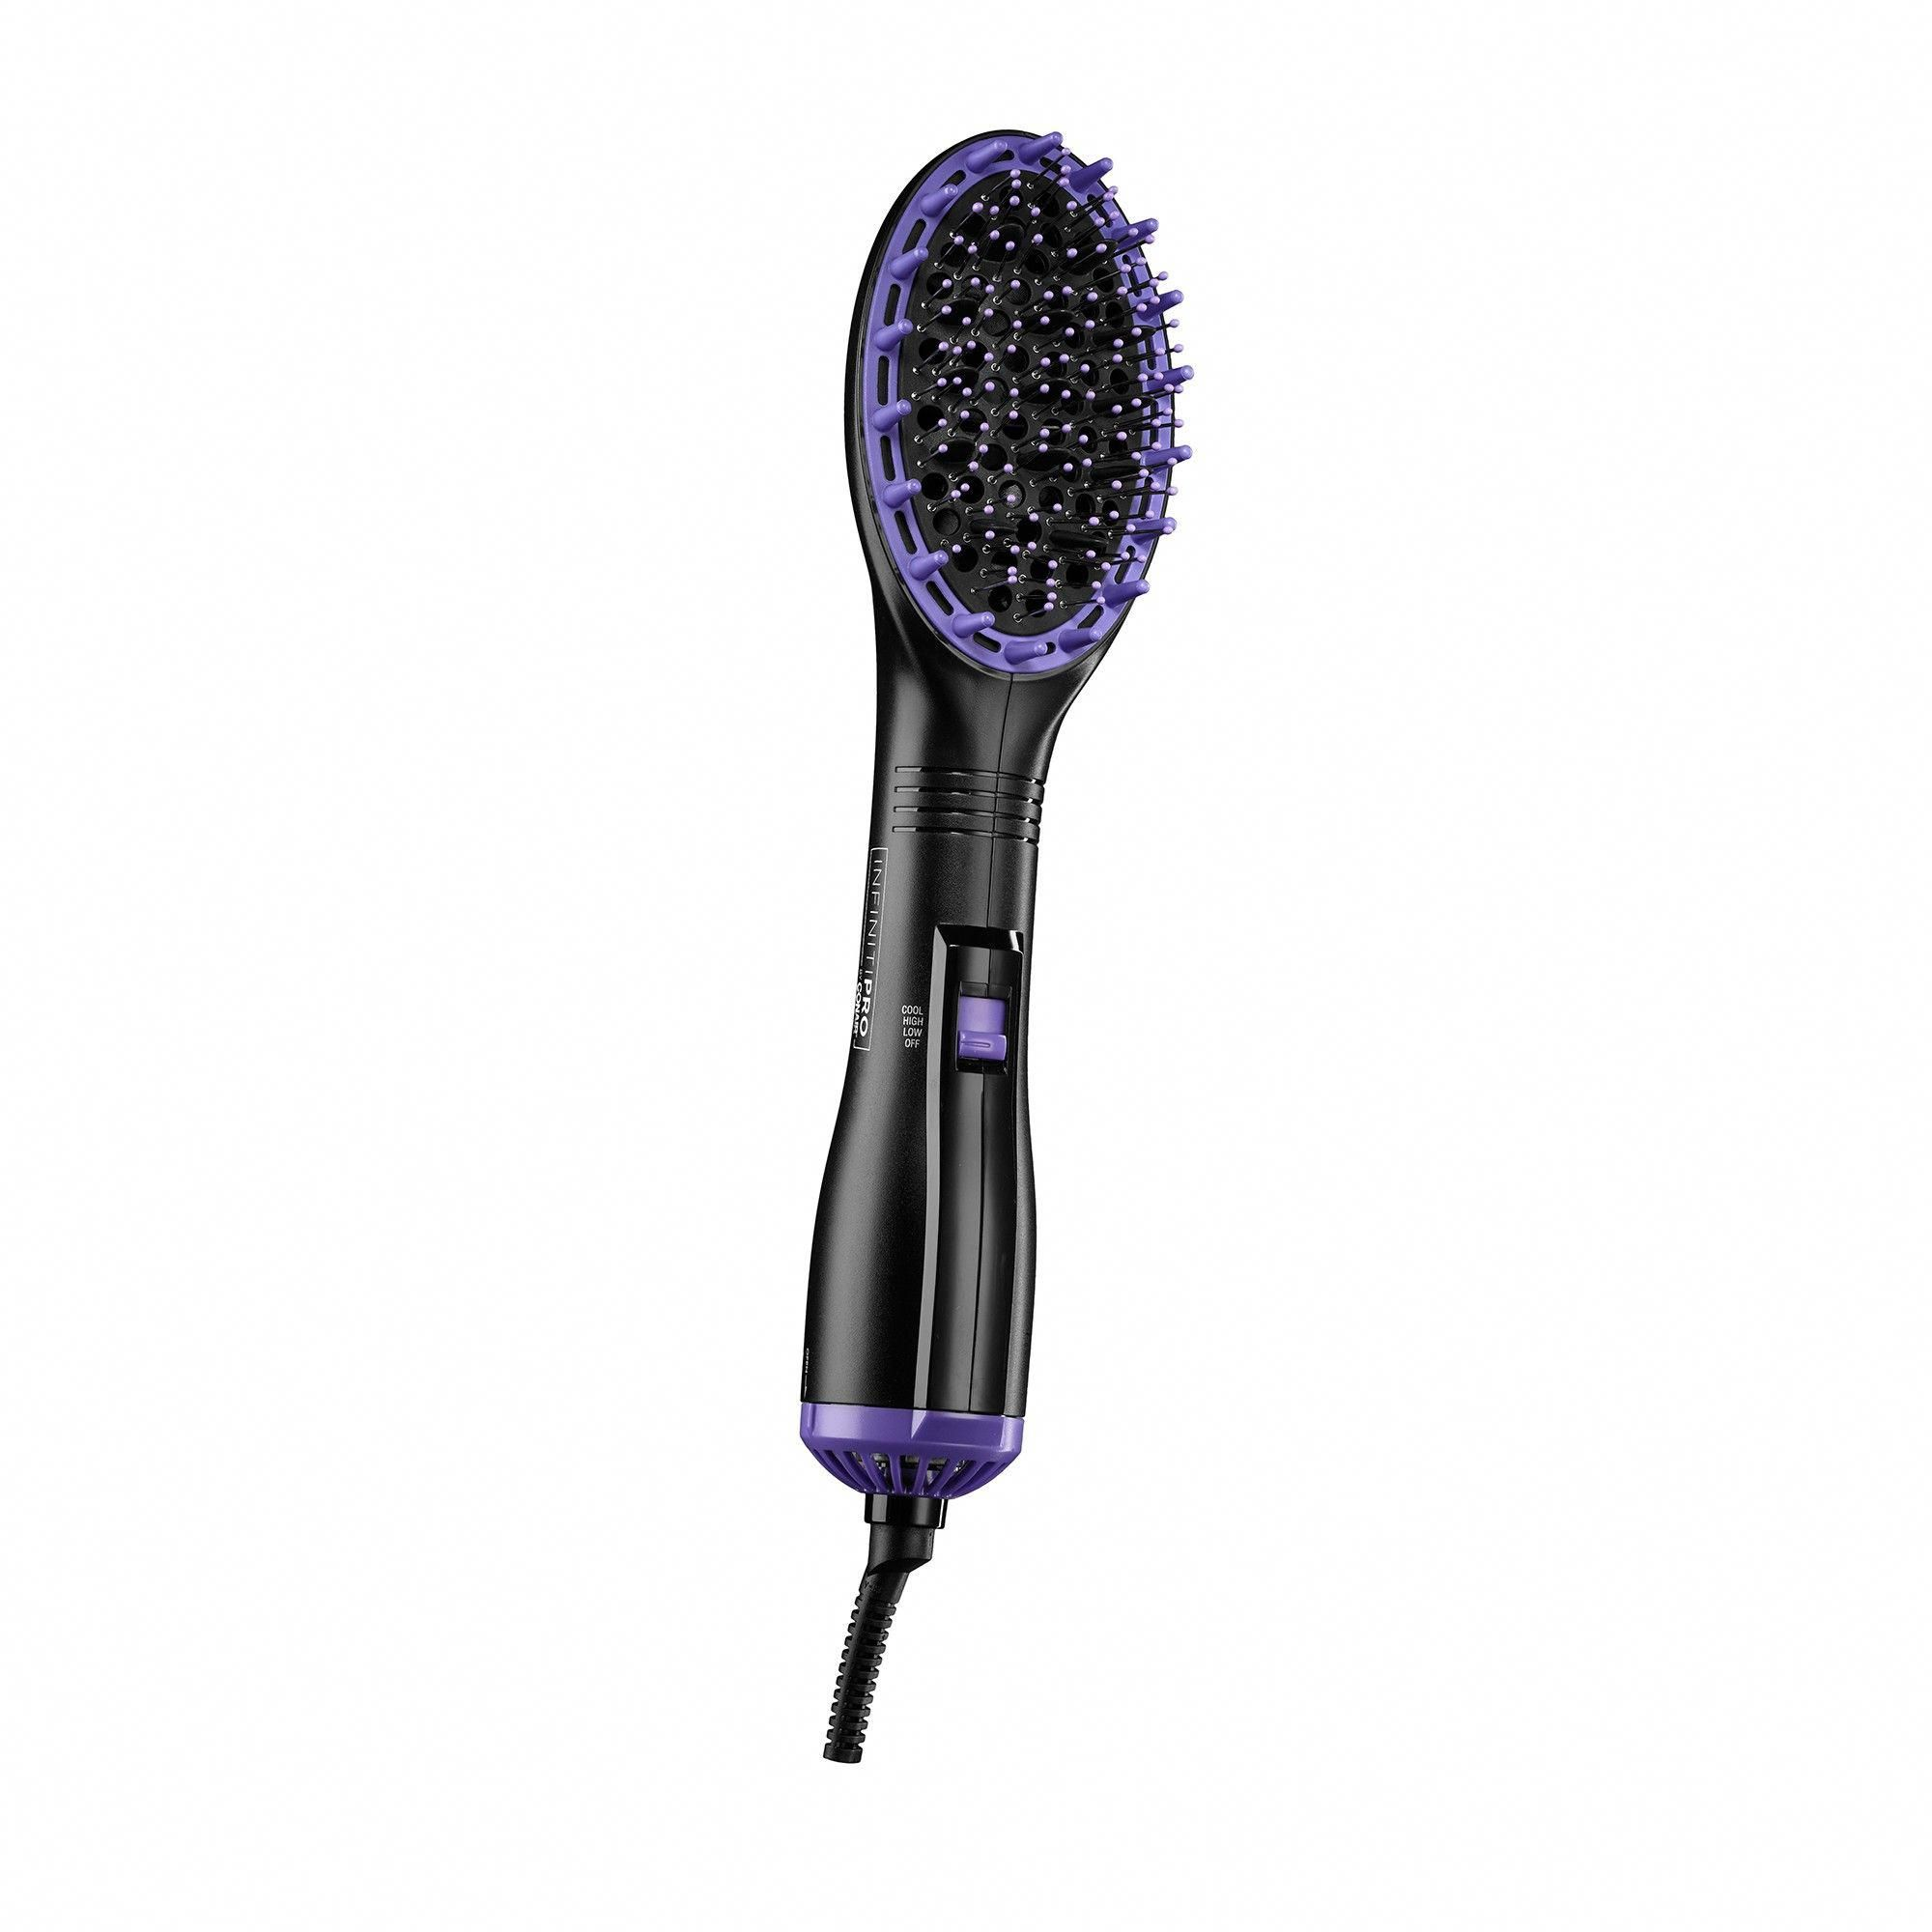 Conair InfintiPro Dry & Style Hot Air Paddle Brush, Black